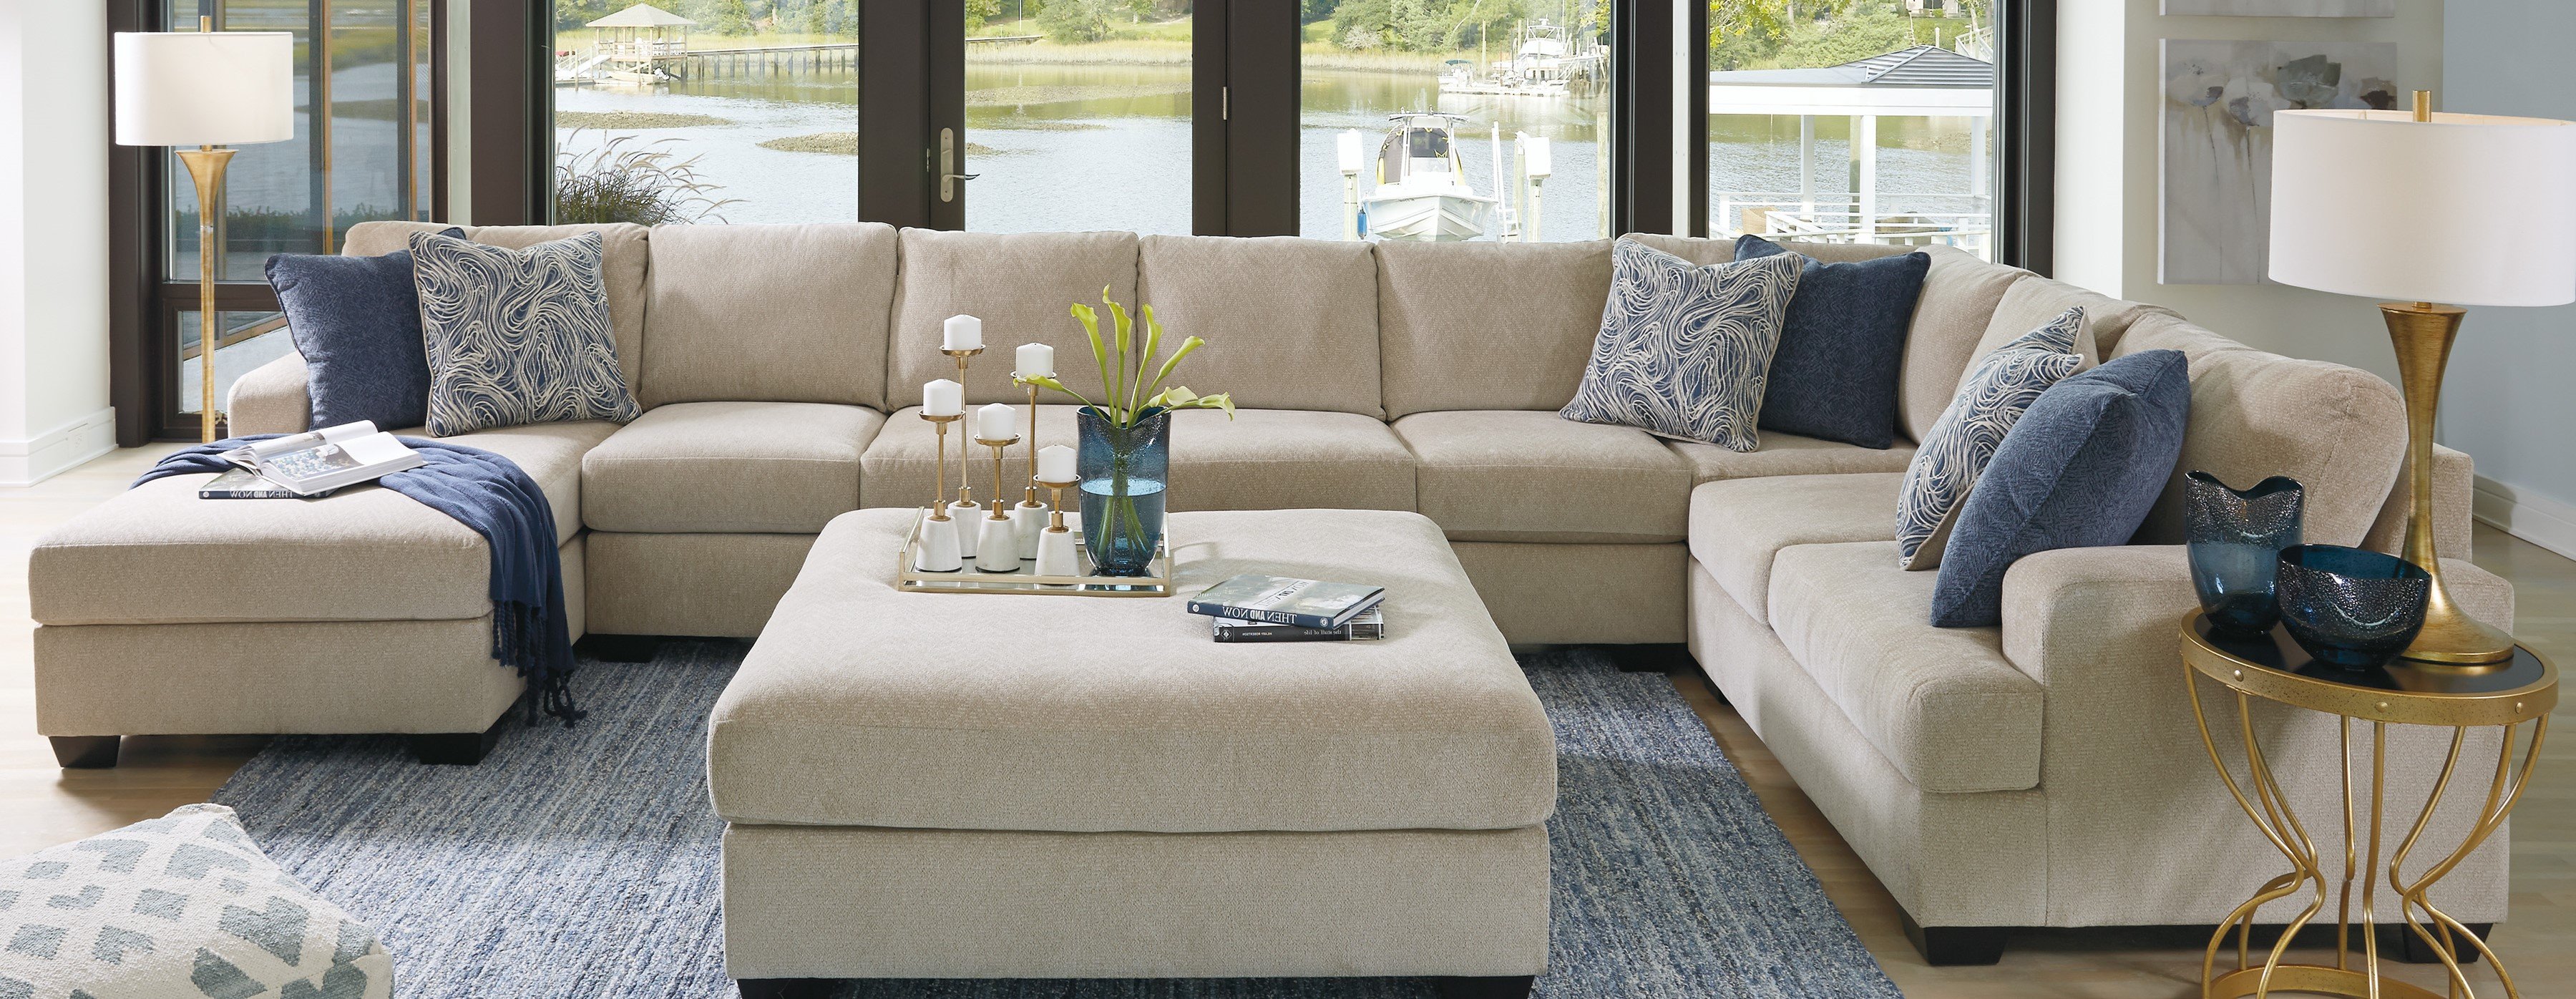 Ashley HomeStore Pearlridge reviews  Furniture Stores at 12-12